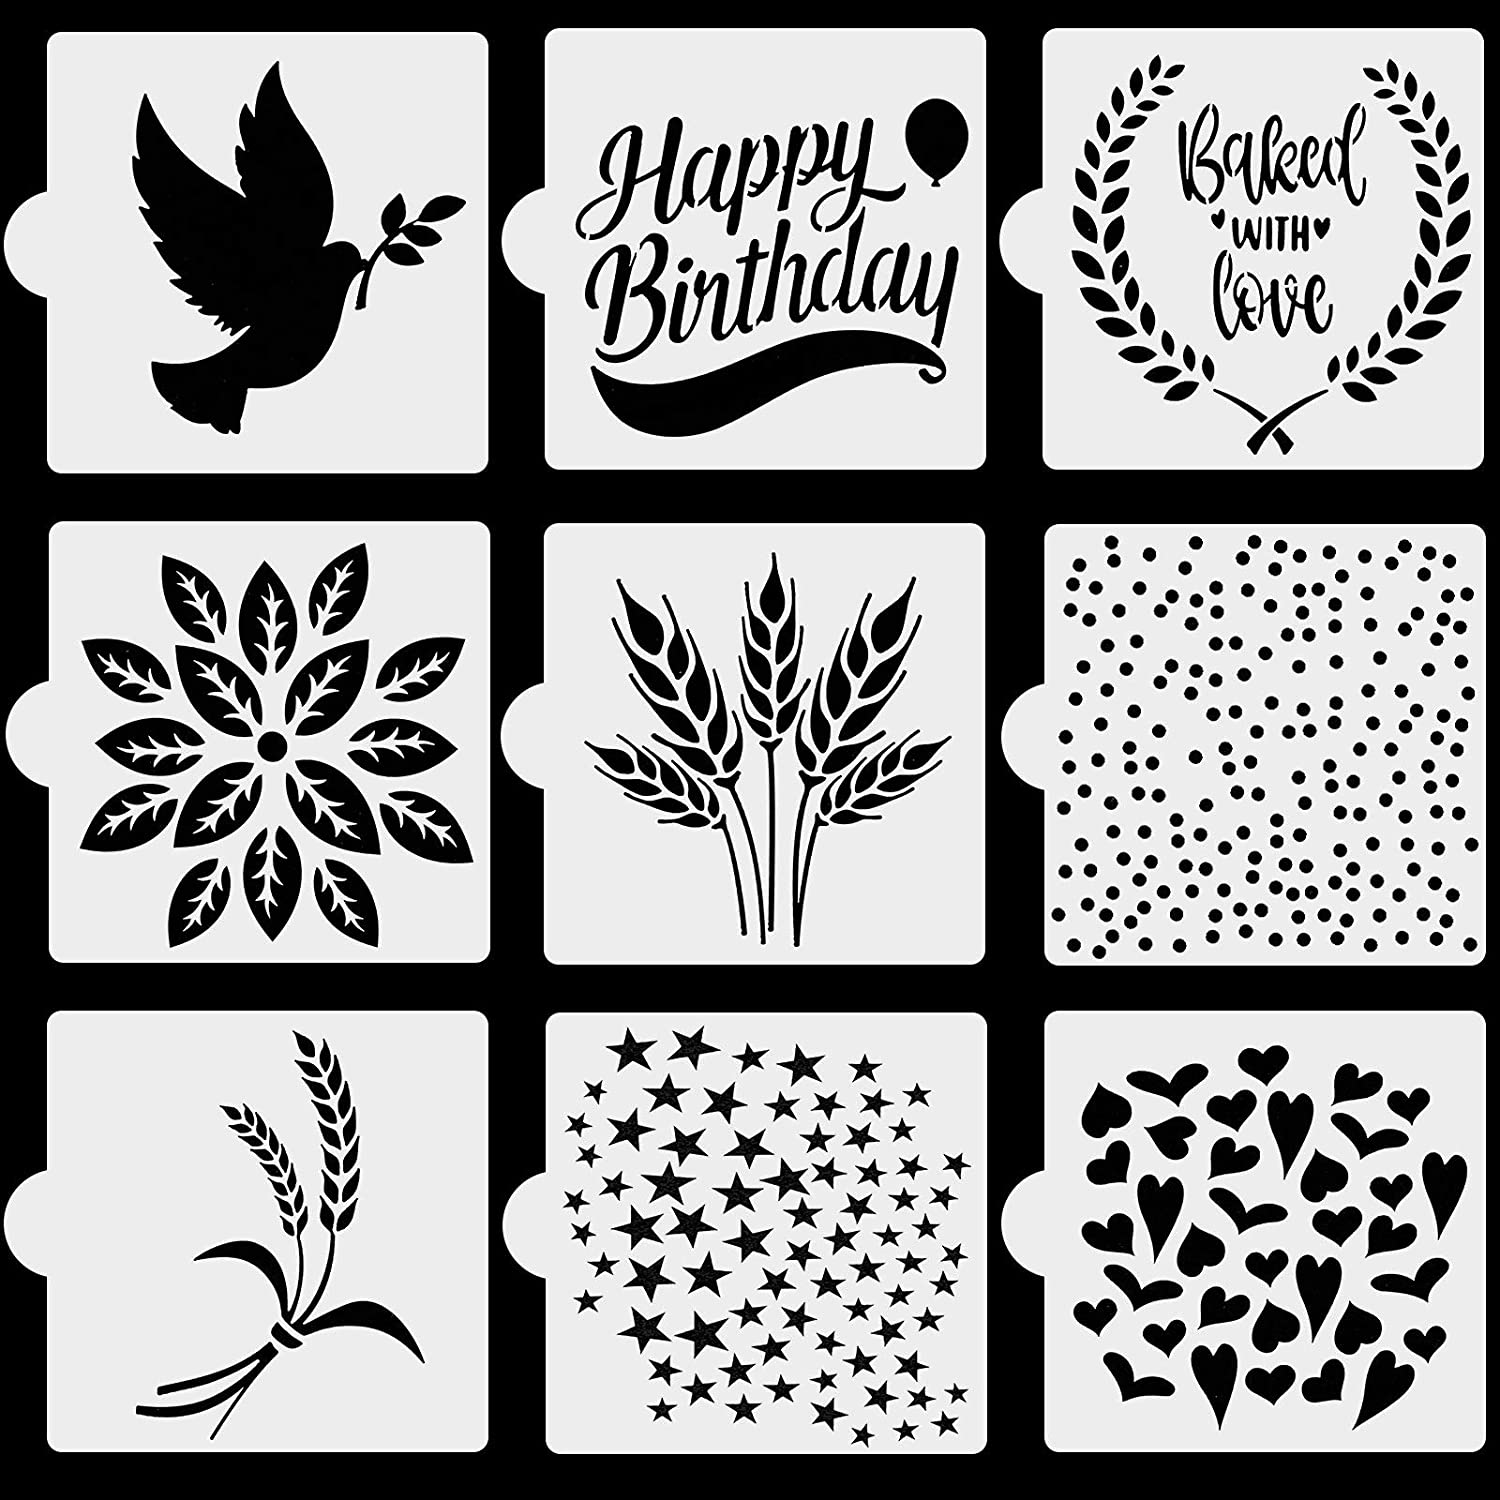 OOTSR 9Pcs Bread Stencils Template, Cookie Cake Baking Stencil Template, Resuable Drawing Paiting Stencils for DIY Craft Food Decorations